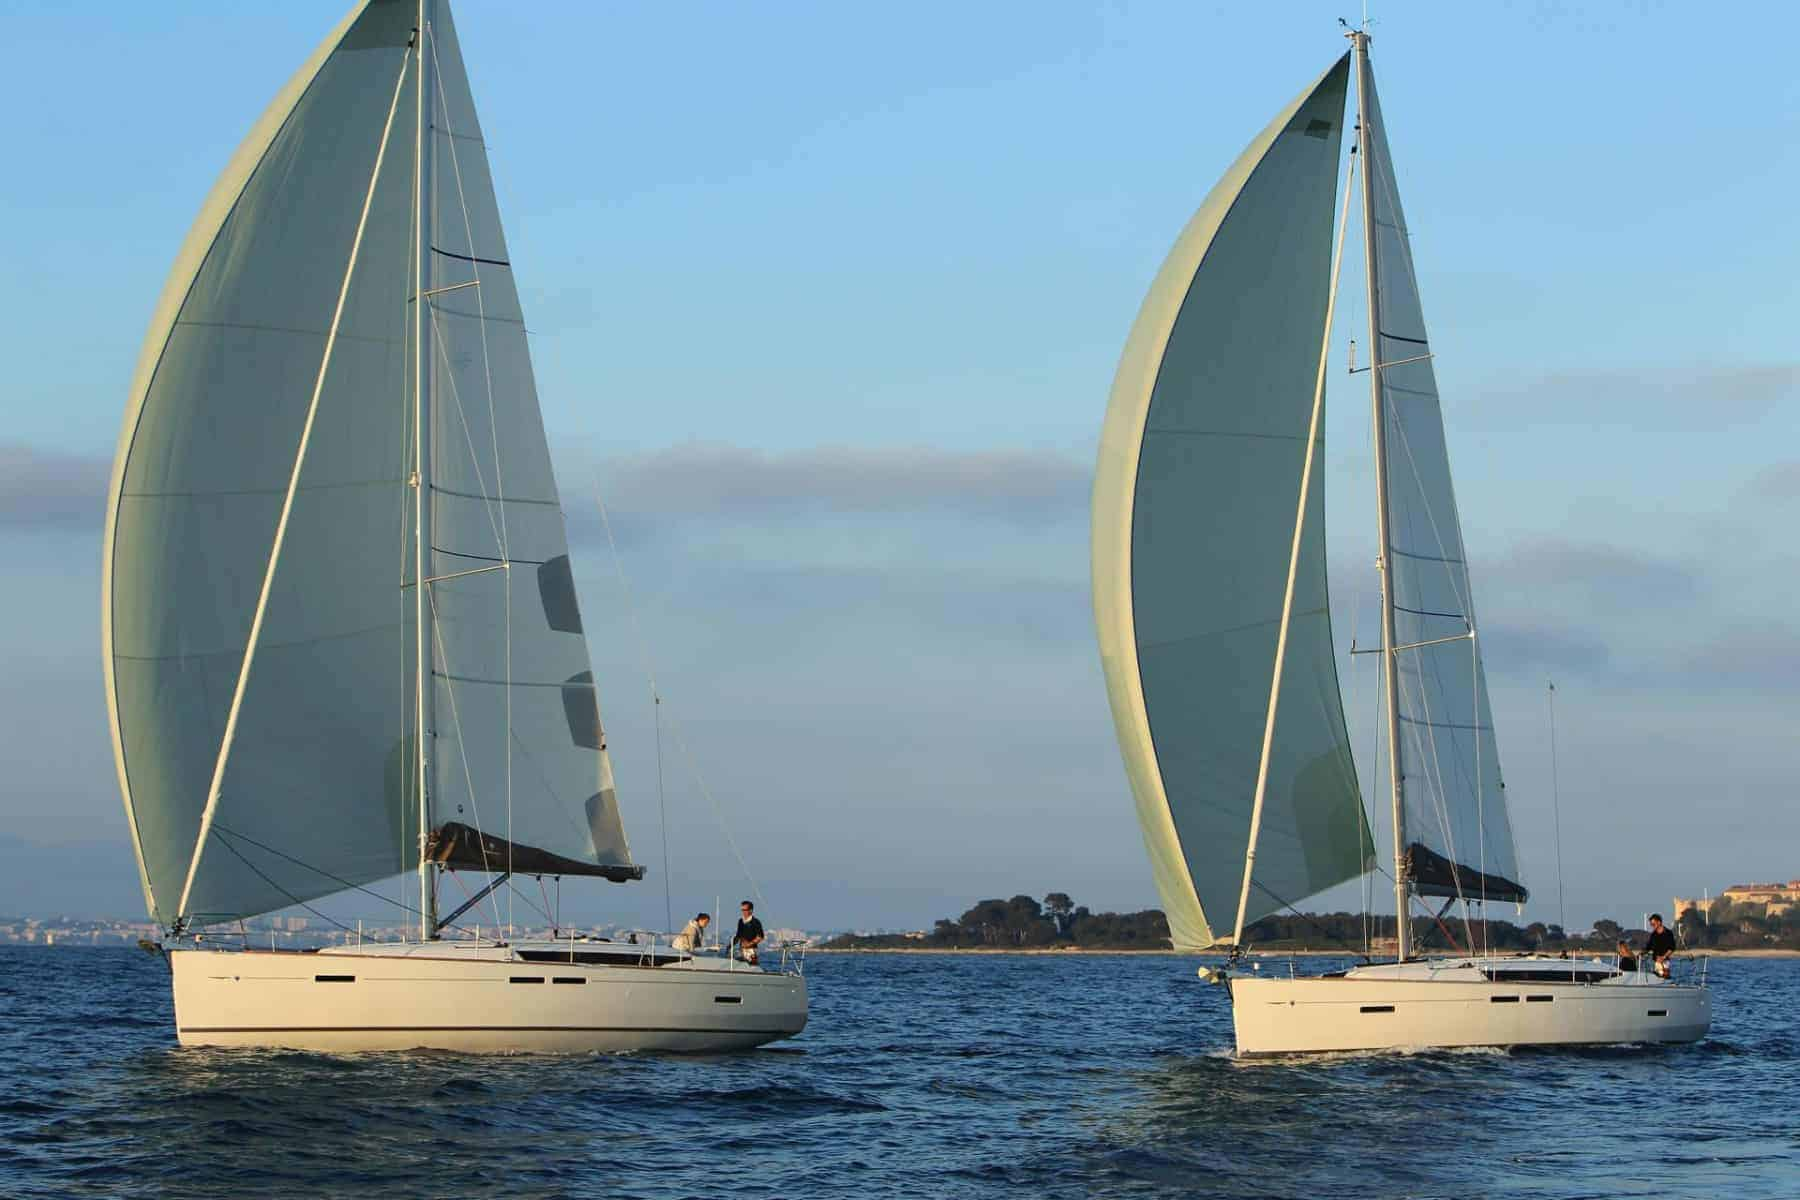 Two Jeanneau Sun Odyssey 449 sailing together away from the coast